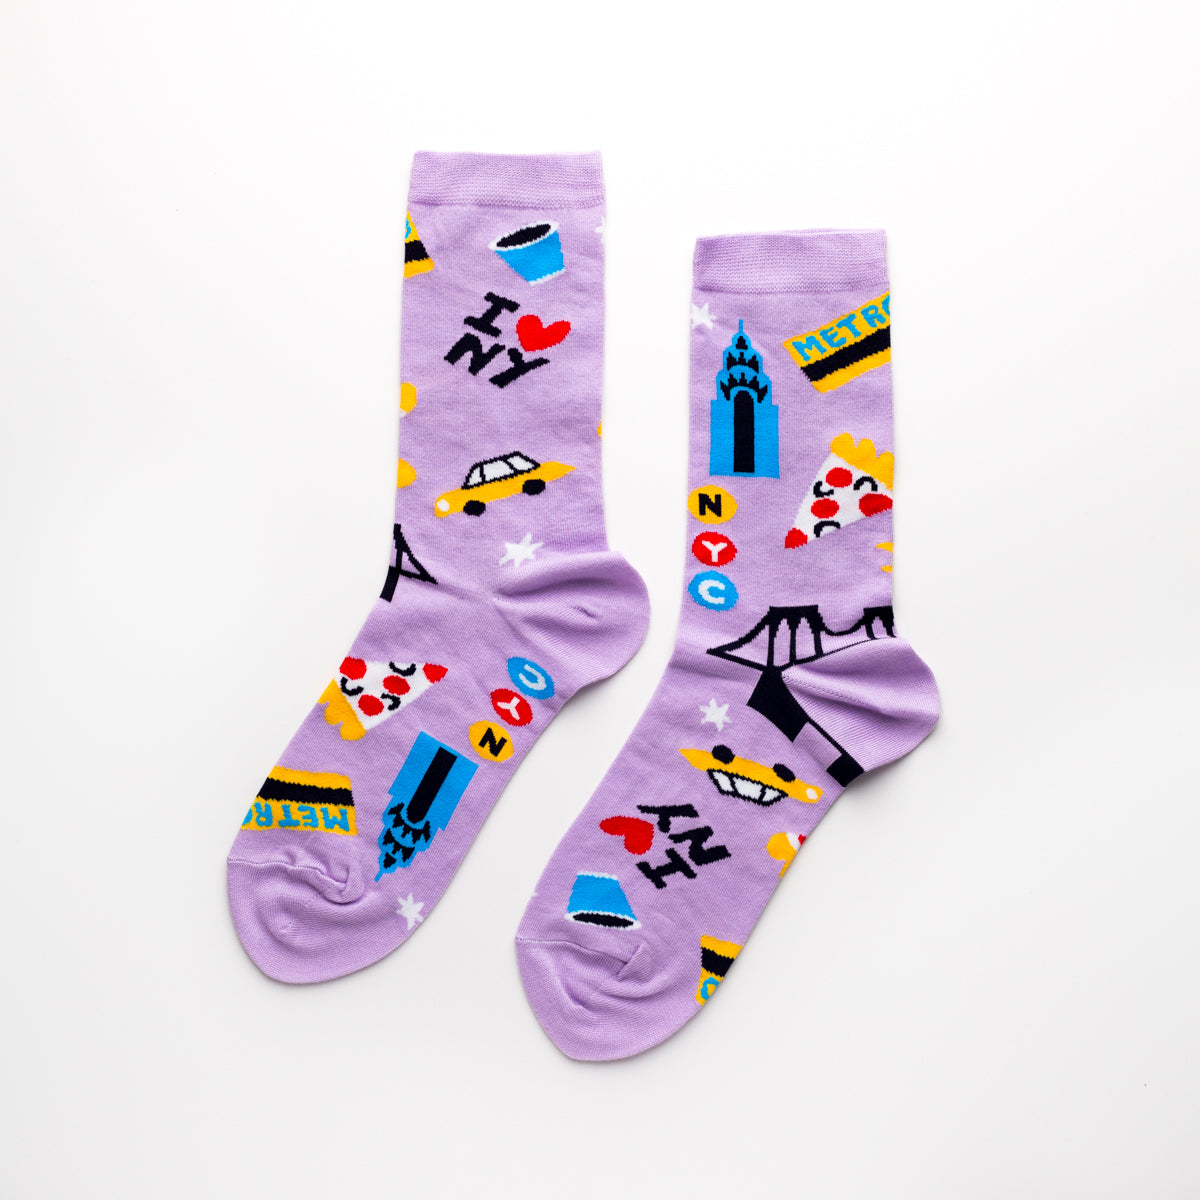 NYC Crew Socks - Women's